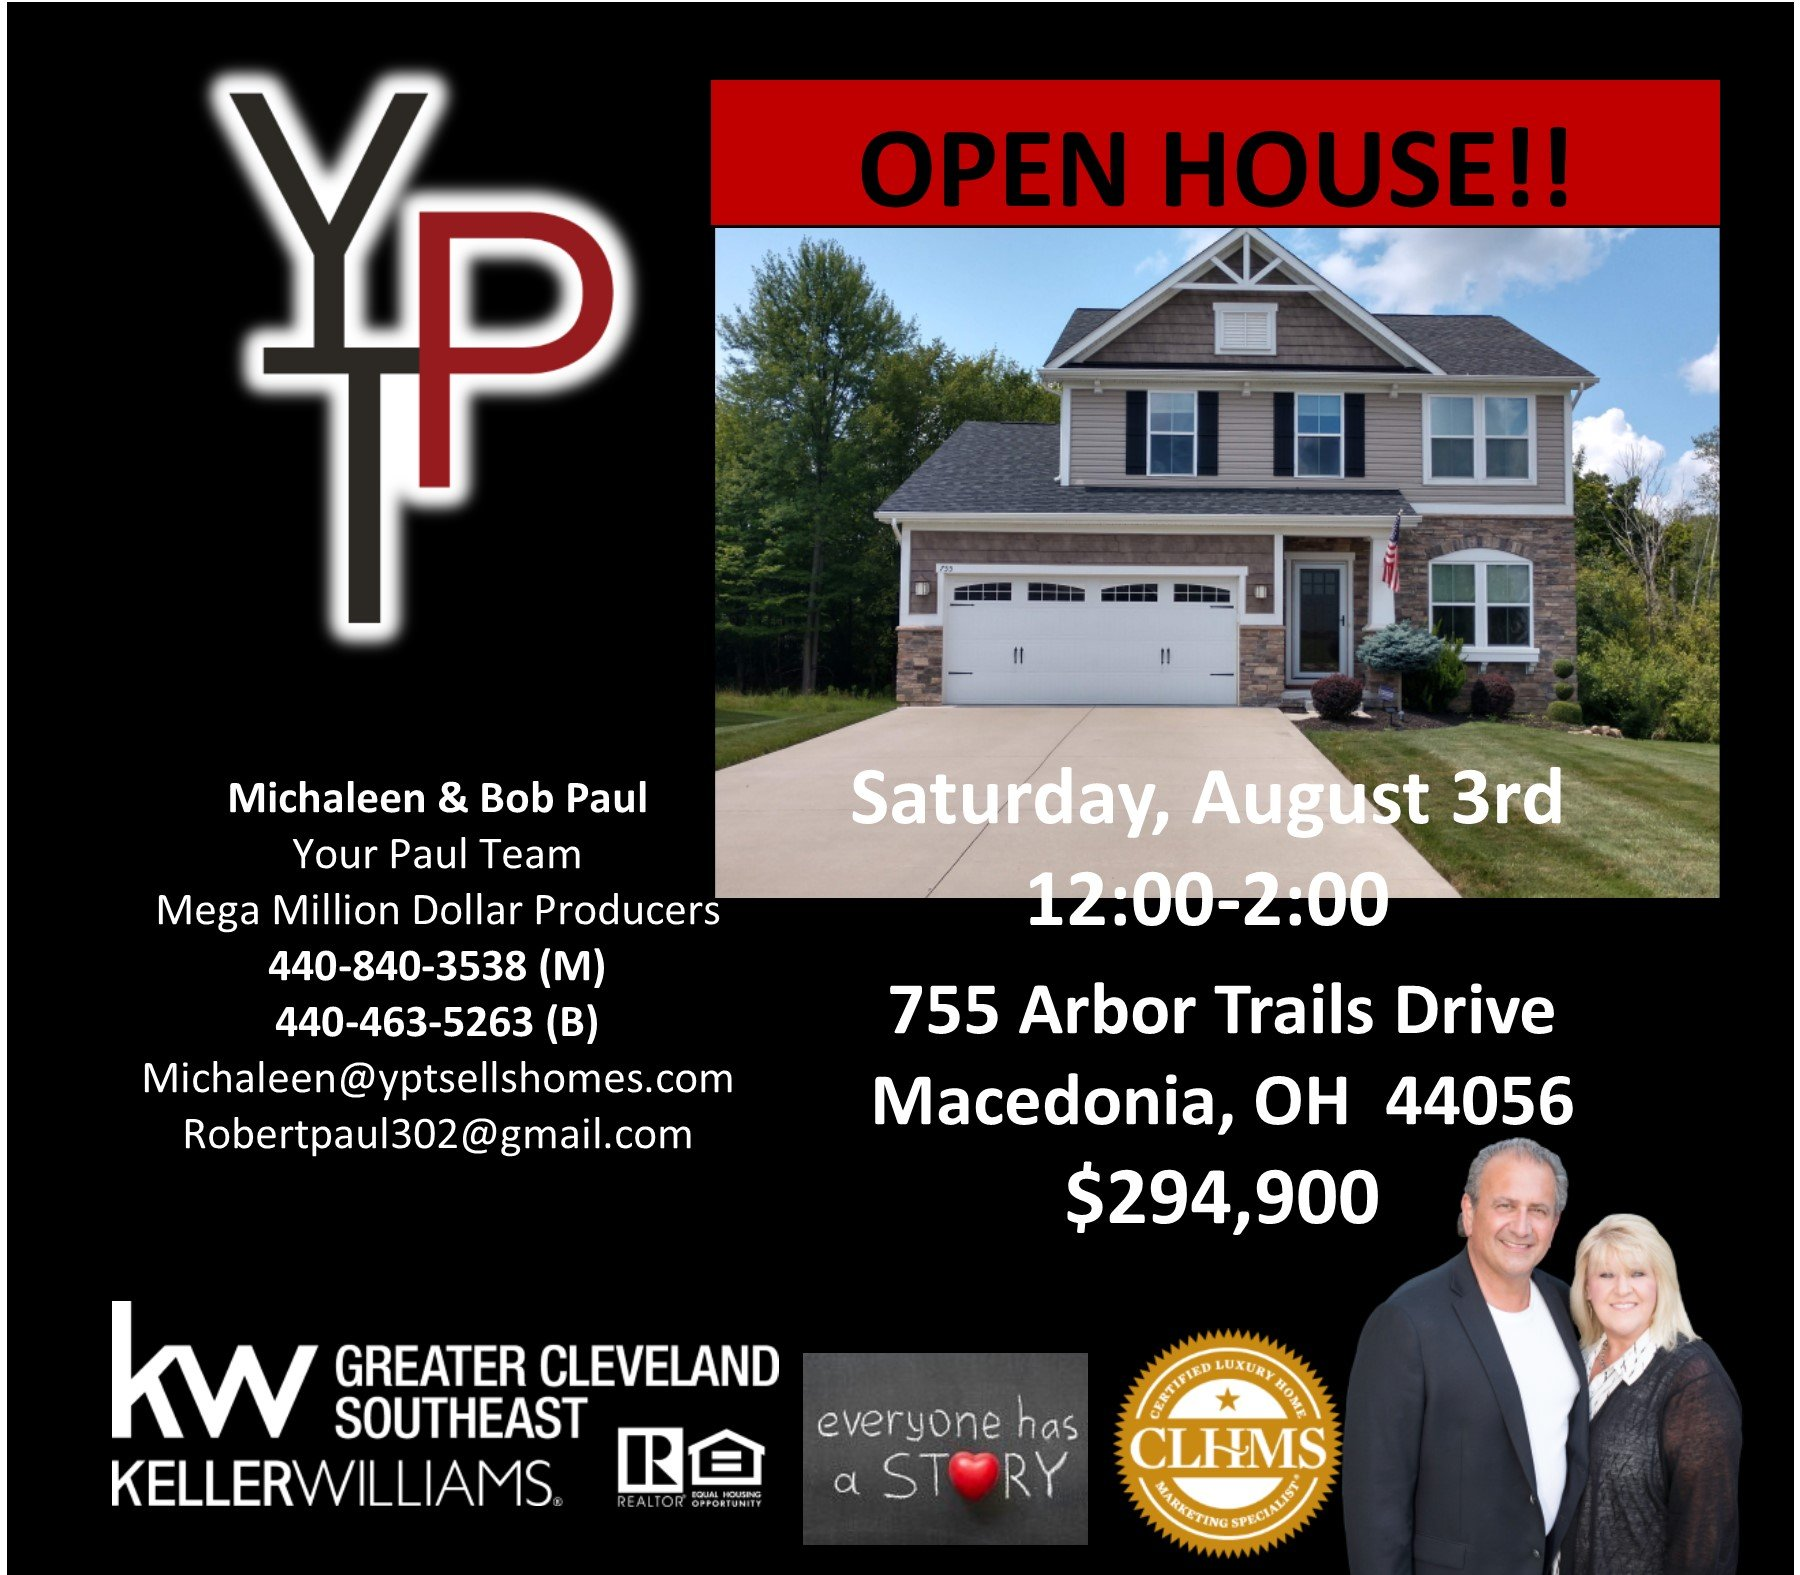 Open House this Saturday in Macedonia!